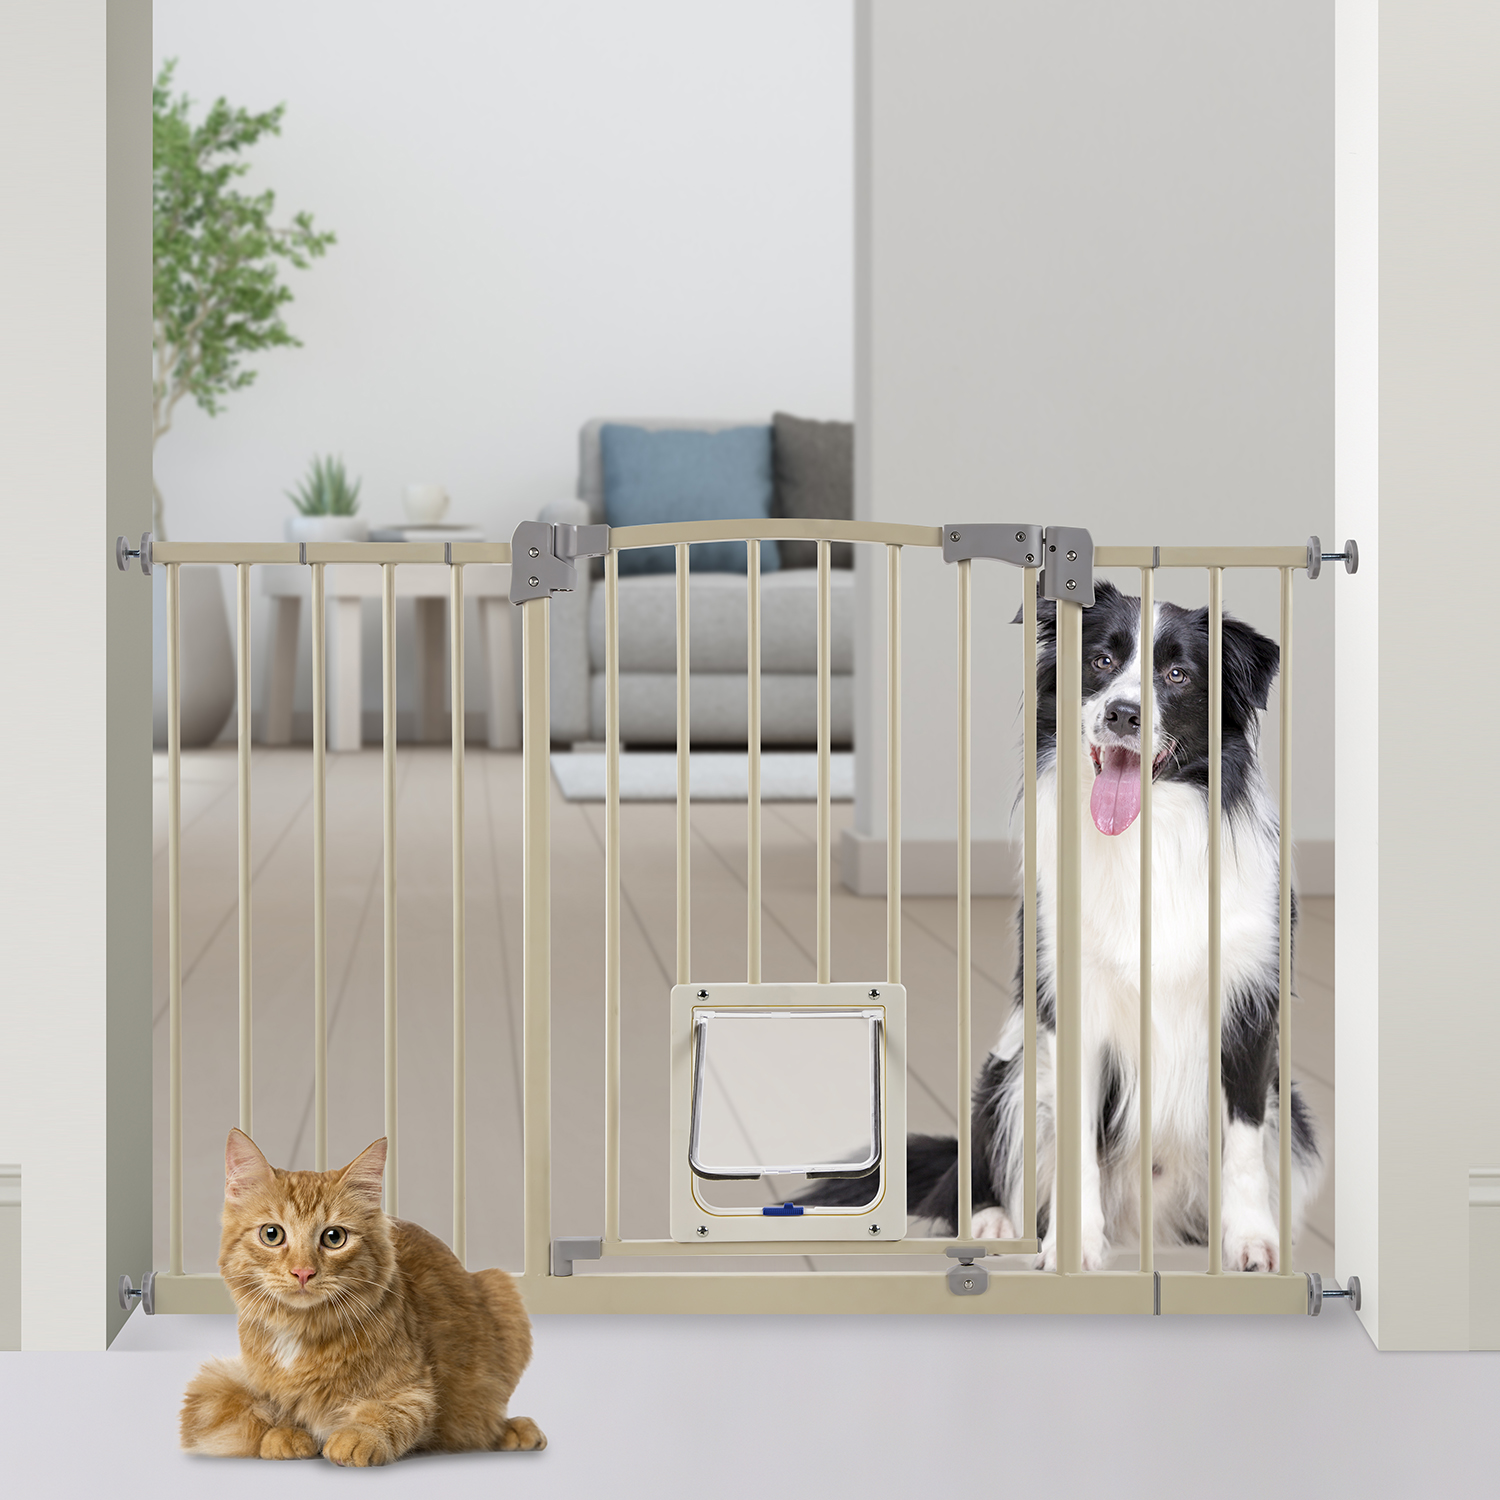 Paws U0026 Pals Dog Gate Multifunctional Indoor Metal Baby Barrier   Adjustable  Fence For House Doorway